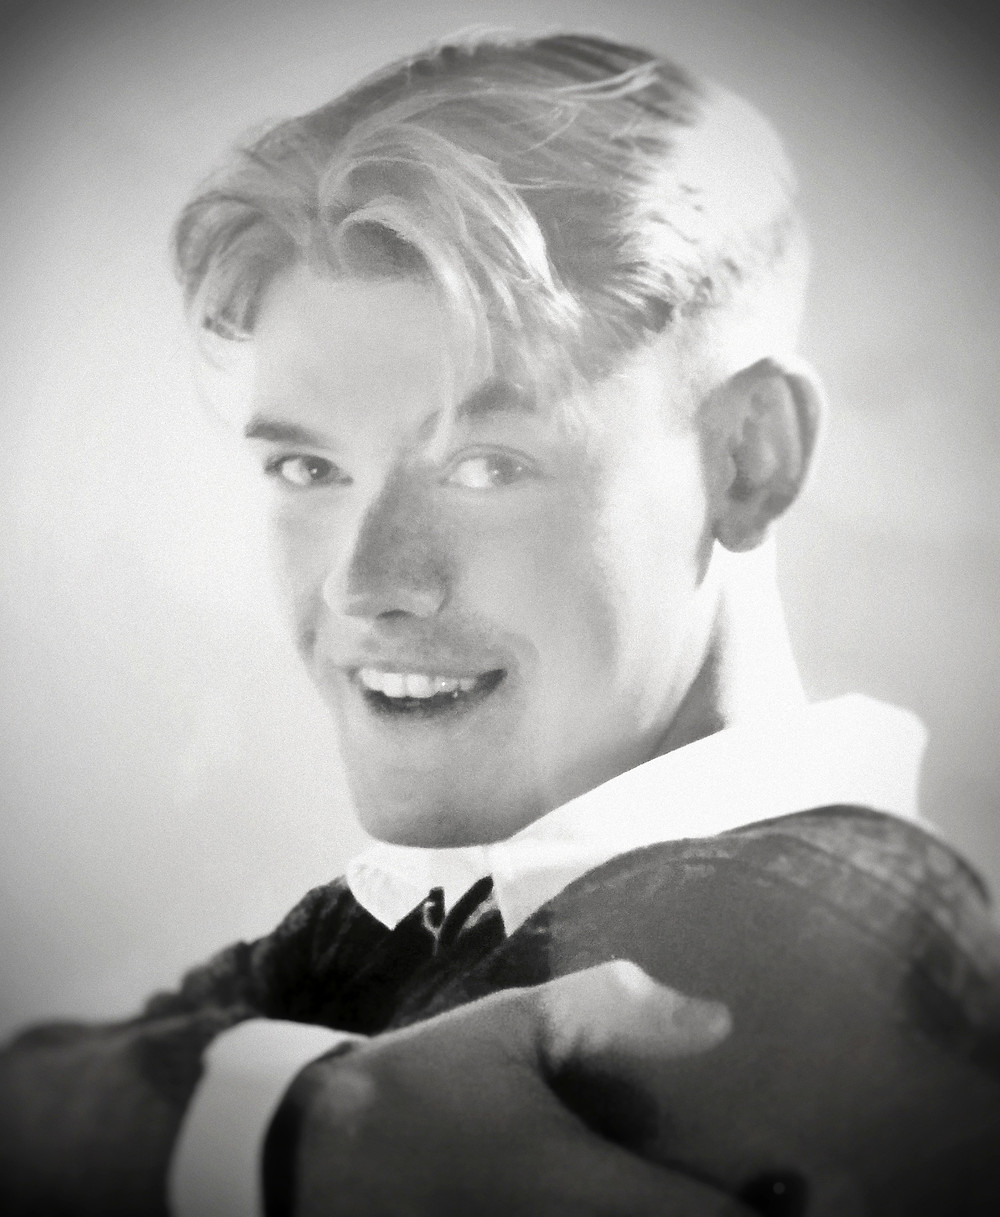 Steve Wentworth at 19 years old.